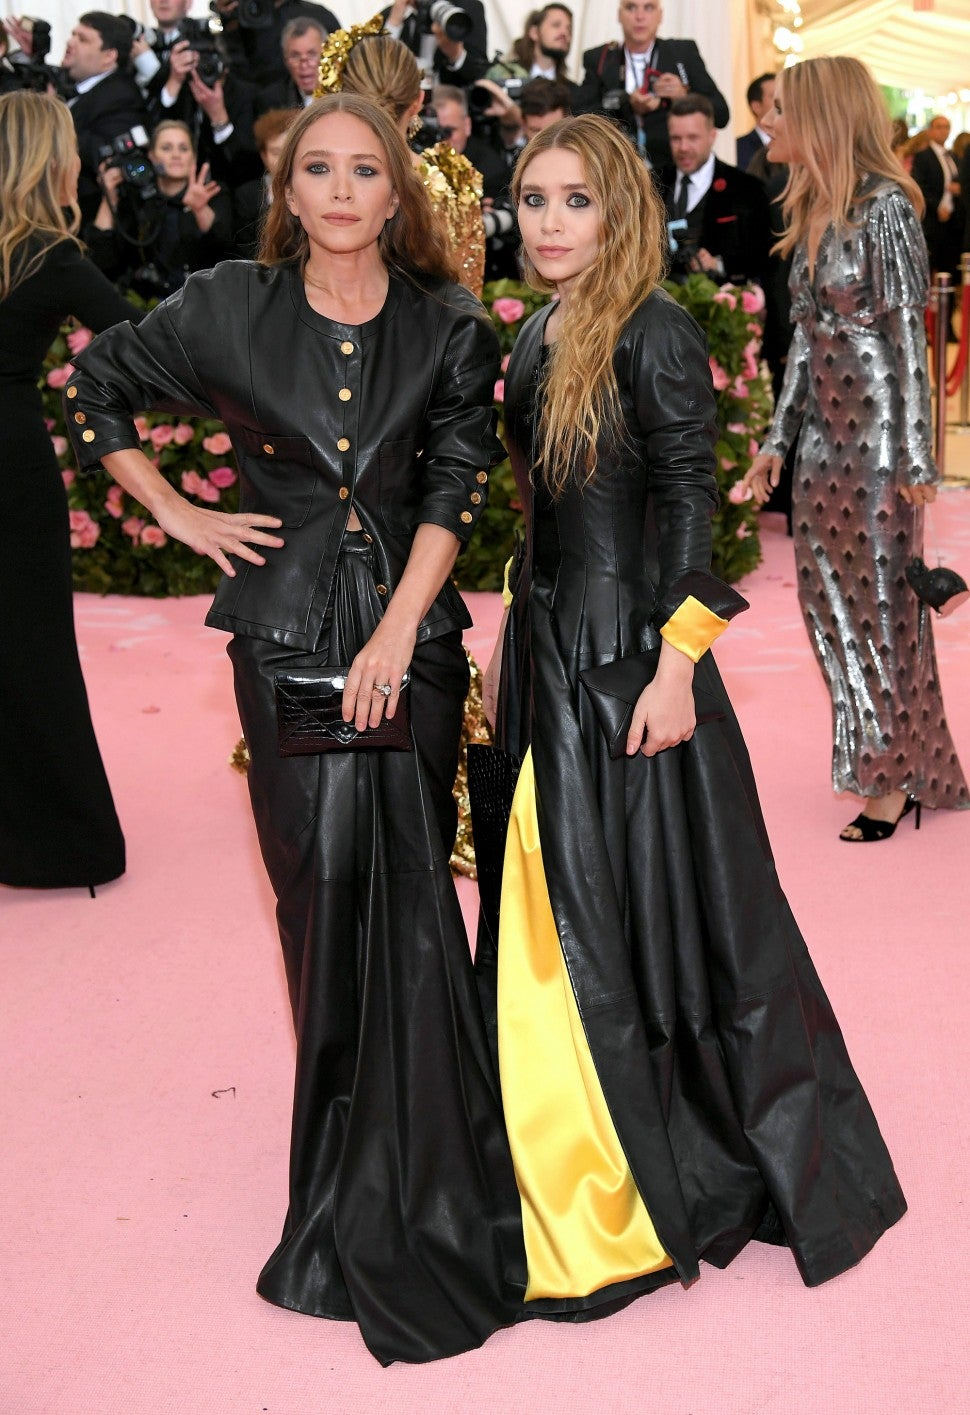 Mary Kate Olsen and Ashley Olsen at The 2019 Met Gala